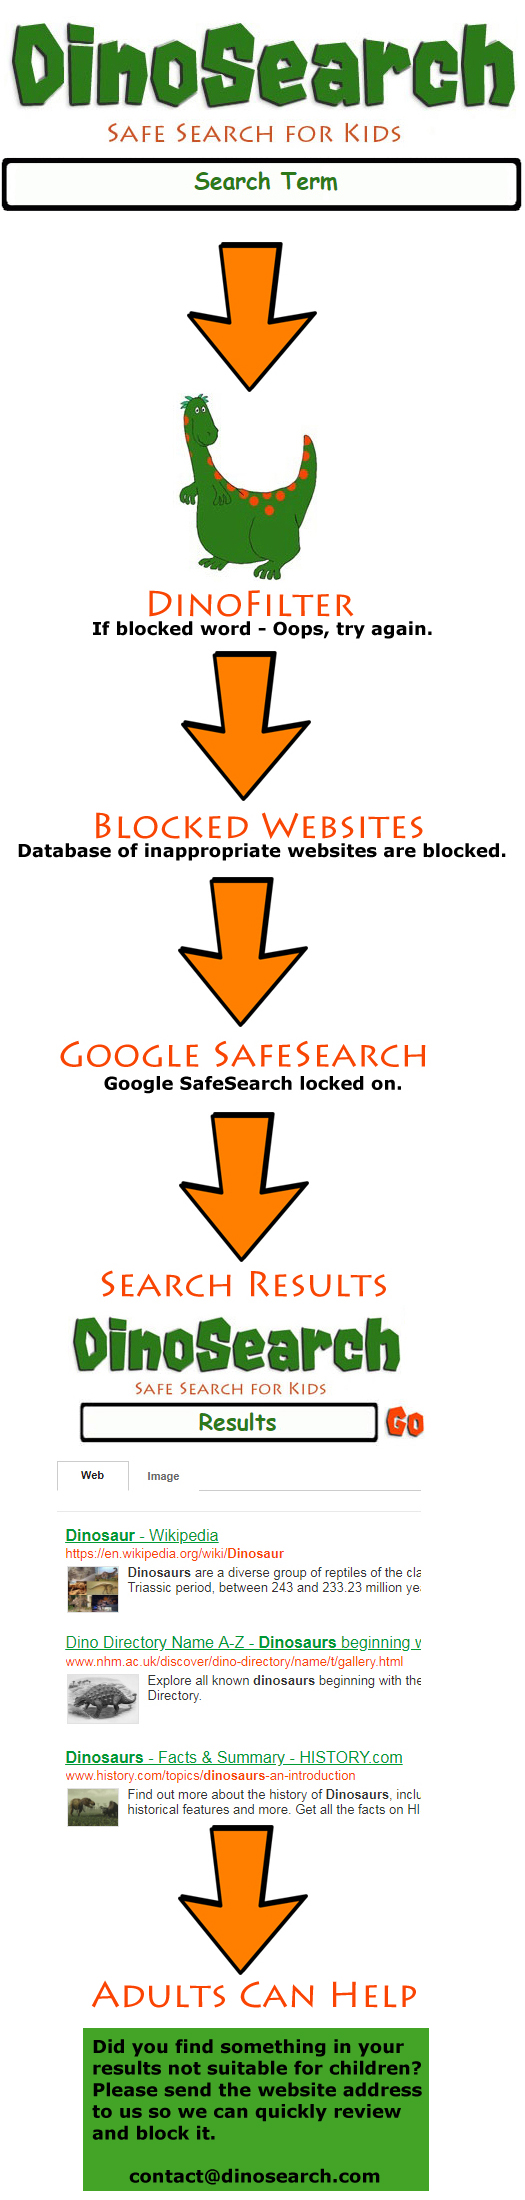 How Kids Safe Search works as Infographic